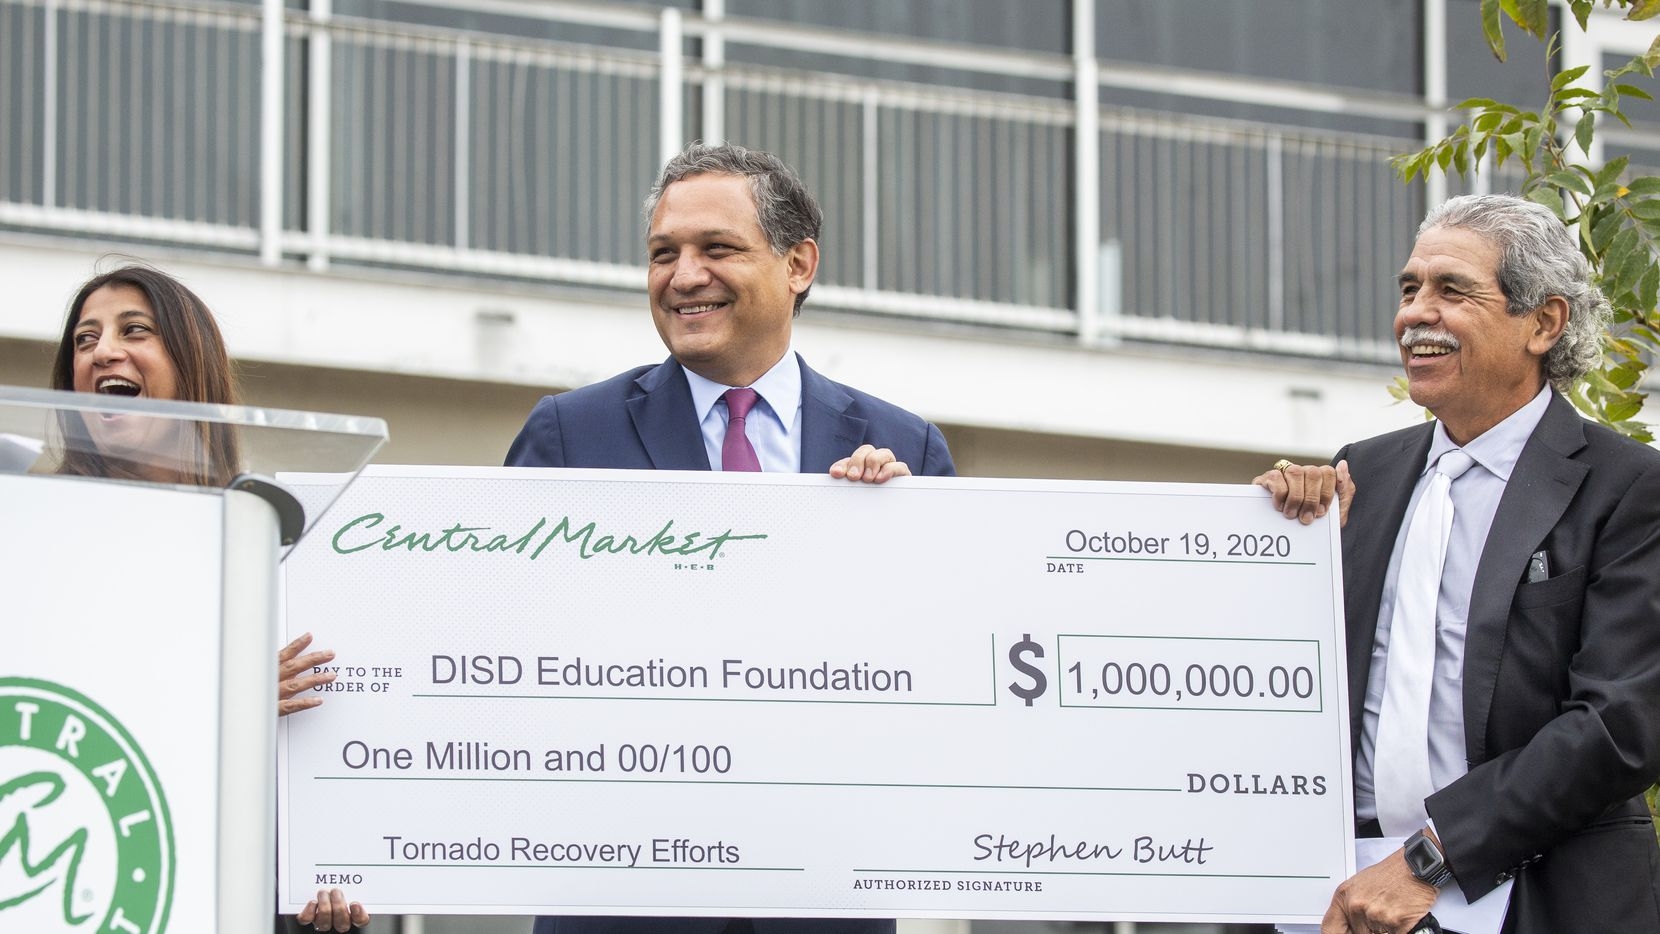 From left, Mita Havlick, executive director of Dallas Education Foundation, Edwin Flores, Dallas ISD Board Trustees for District 1, and Dr. Michael Hinojosa (right), superintendent of Dallas ISD, react to receiving a $1 million check during a ceremony announcing charitable donations for tornado rebuilding projects at the Central Market Preston Royal location in Dallas on Monday, Oct. 19, 2020. H-E-B/Central Market made a $1 million donation to Dallas ISD's Dallas Education Foundation on Monday, while also gifting 50 trees and announcing an April/May 2021 completion date for its Preston Royal store reopening after a tornado tore through the area a year ago. (Lynda M. González/The Dallas Morning News)